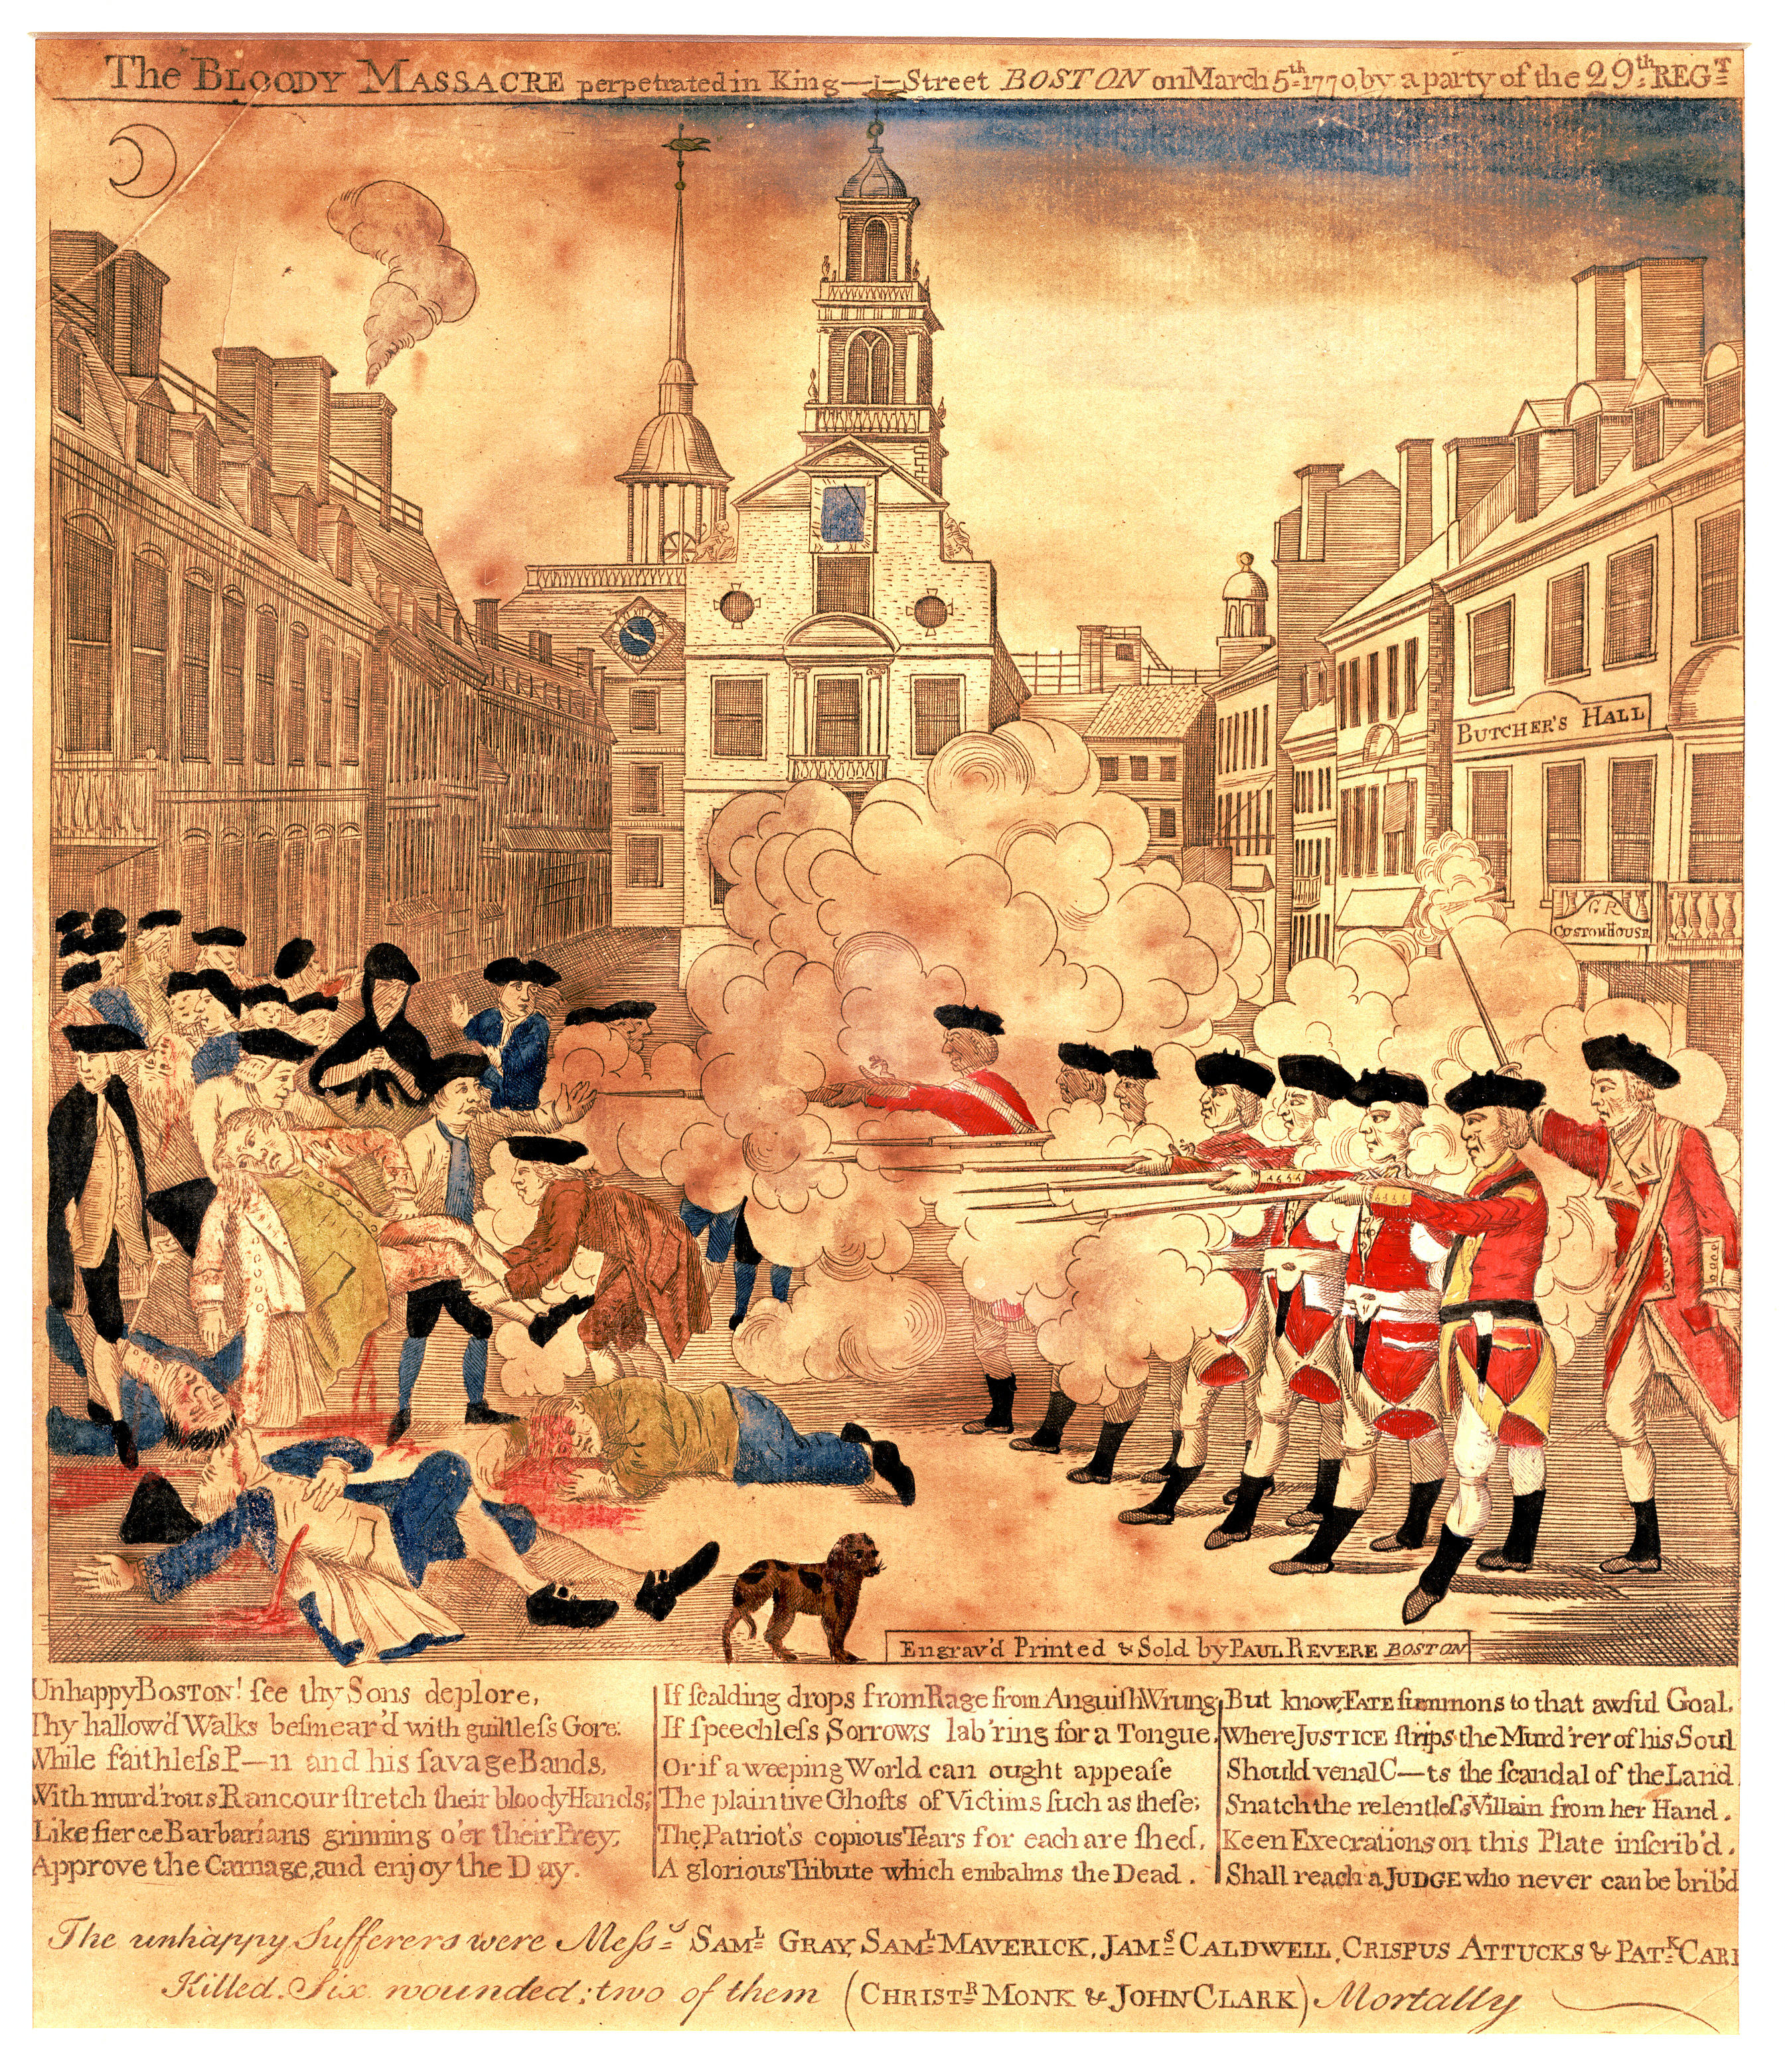 the british impact on the american revolution